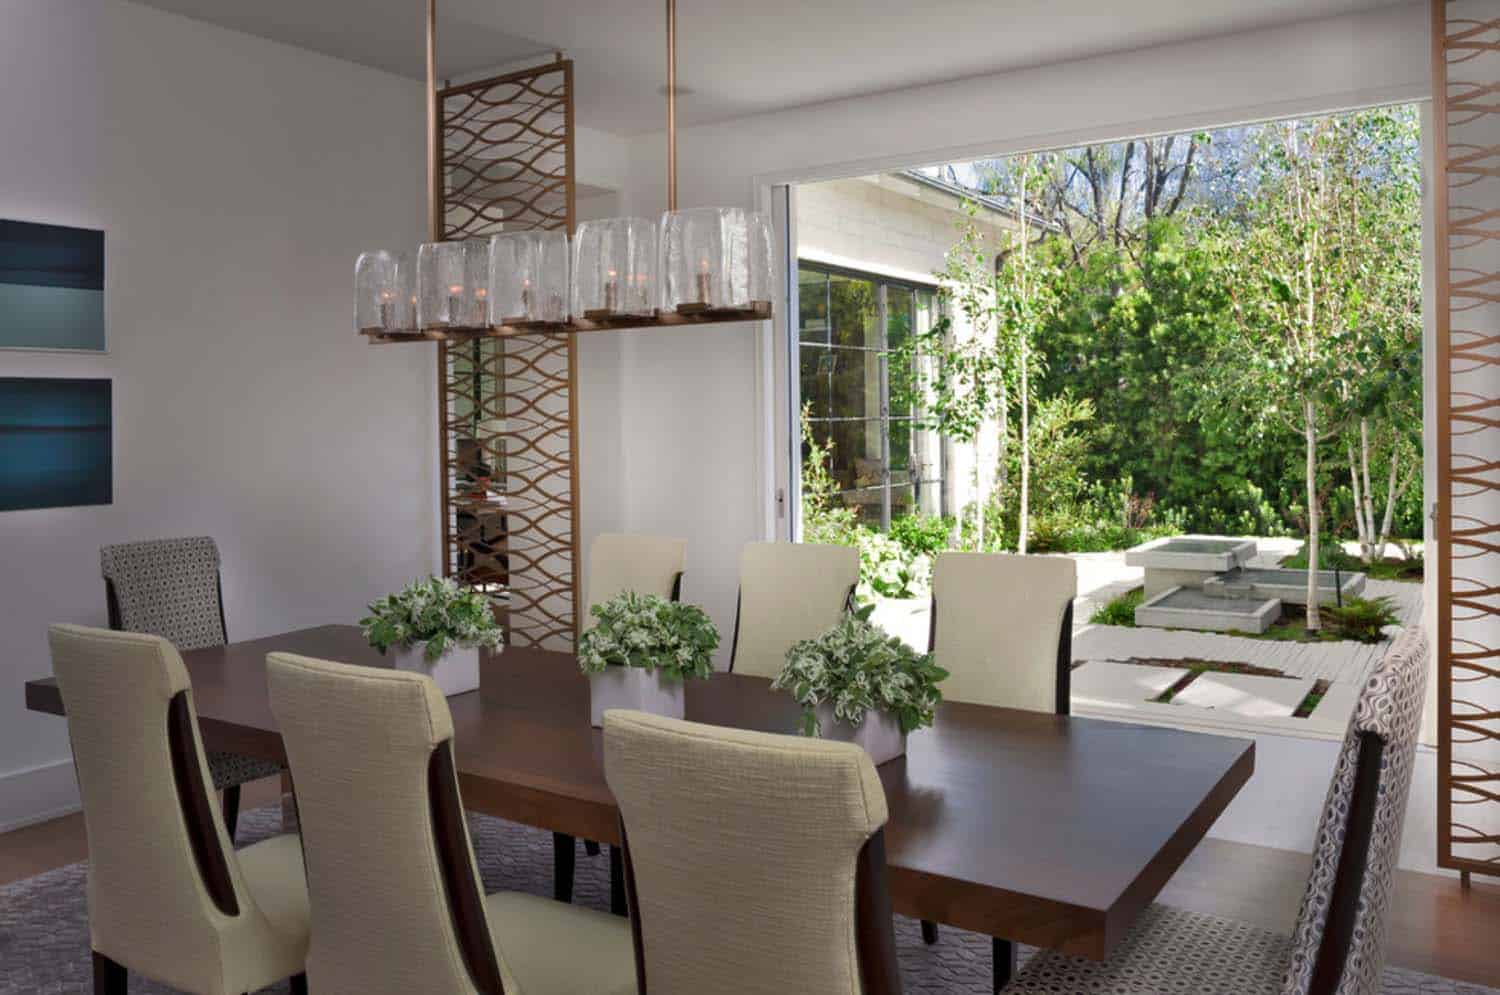 Pacific Palisades Home-Annette English-03-1 Kindesign